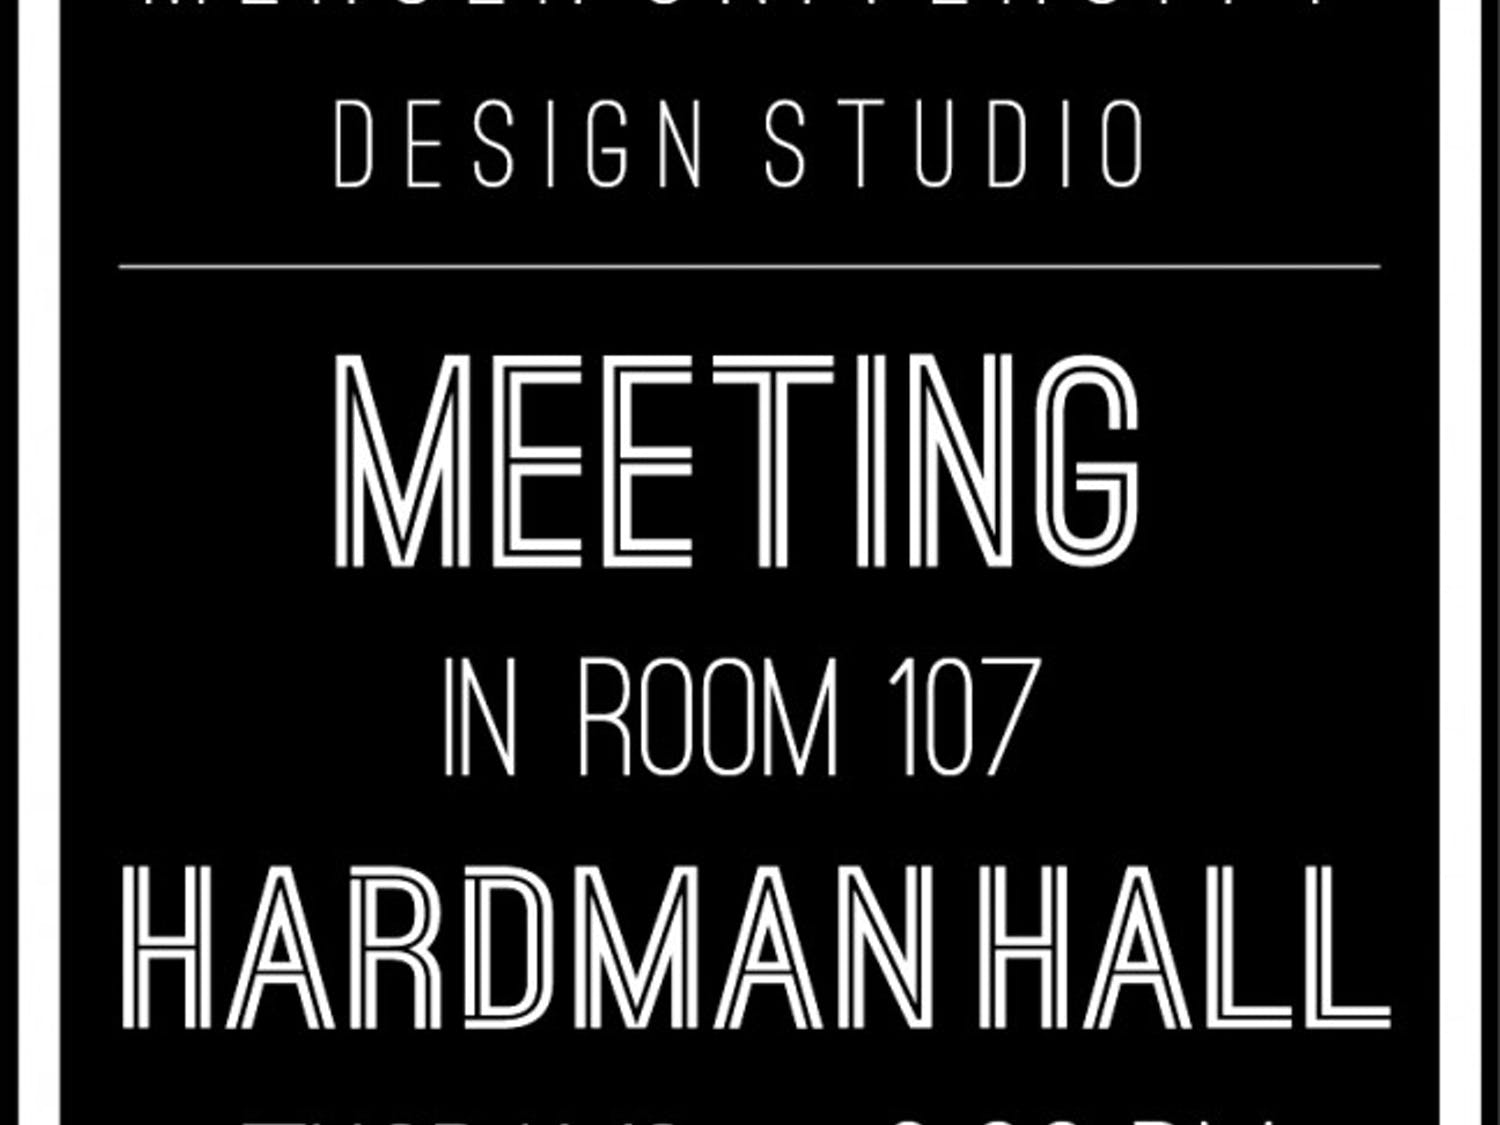 Meeting-Poster-2-Expanded-2